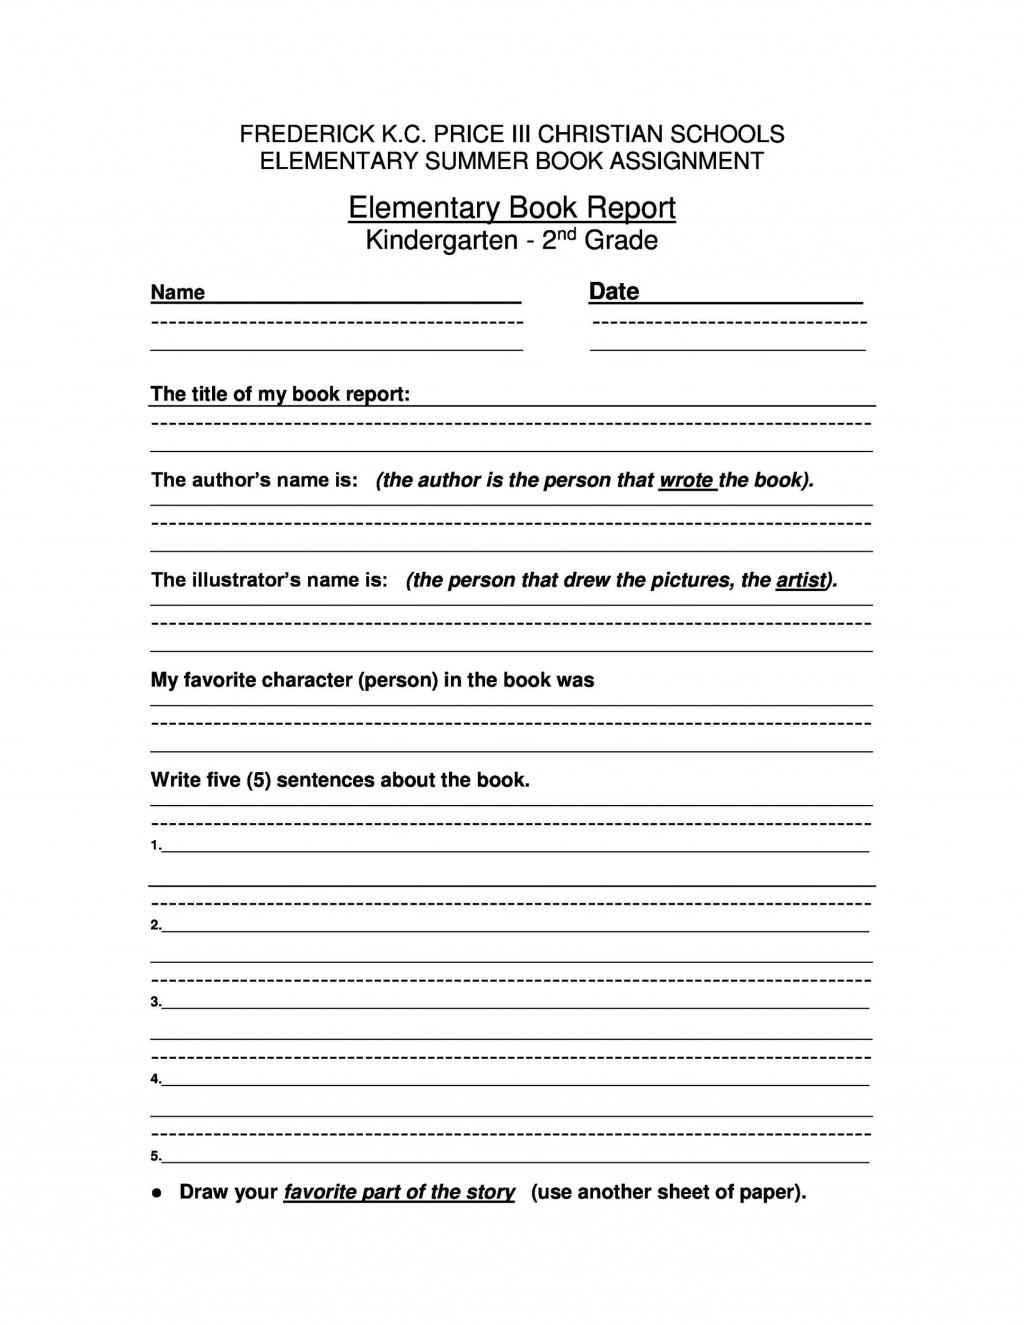 005 Magnificent 6th Grade Book Report Template Image  Sixth Format Printable Middle SchoolLarge